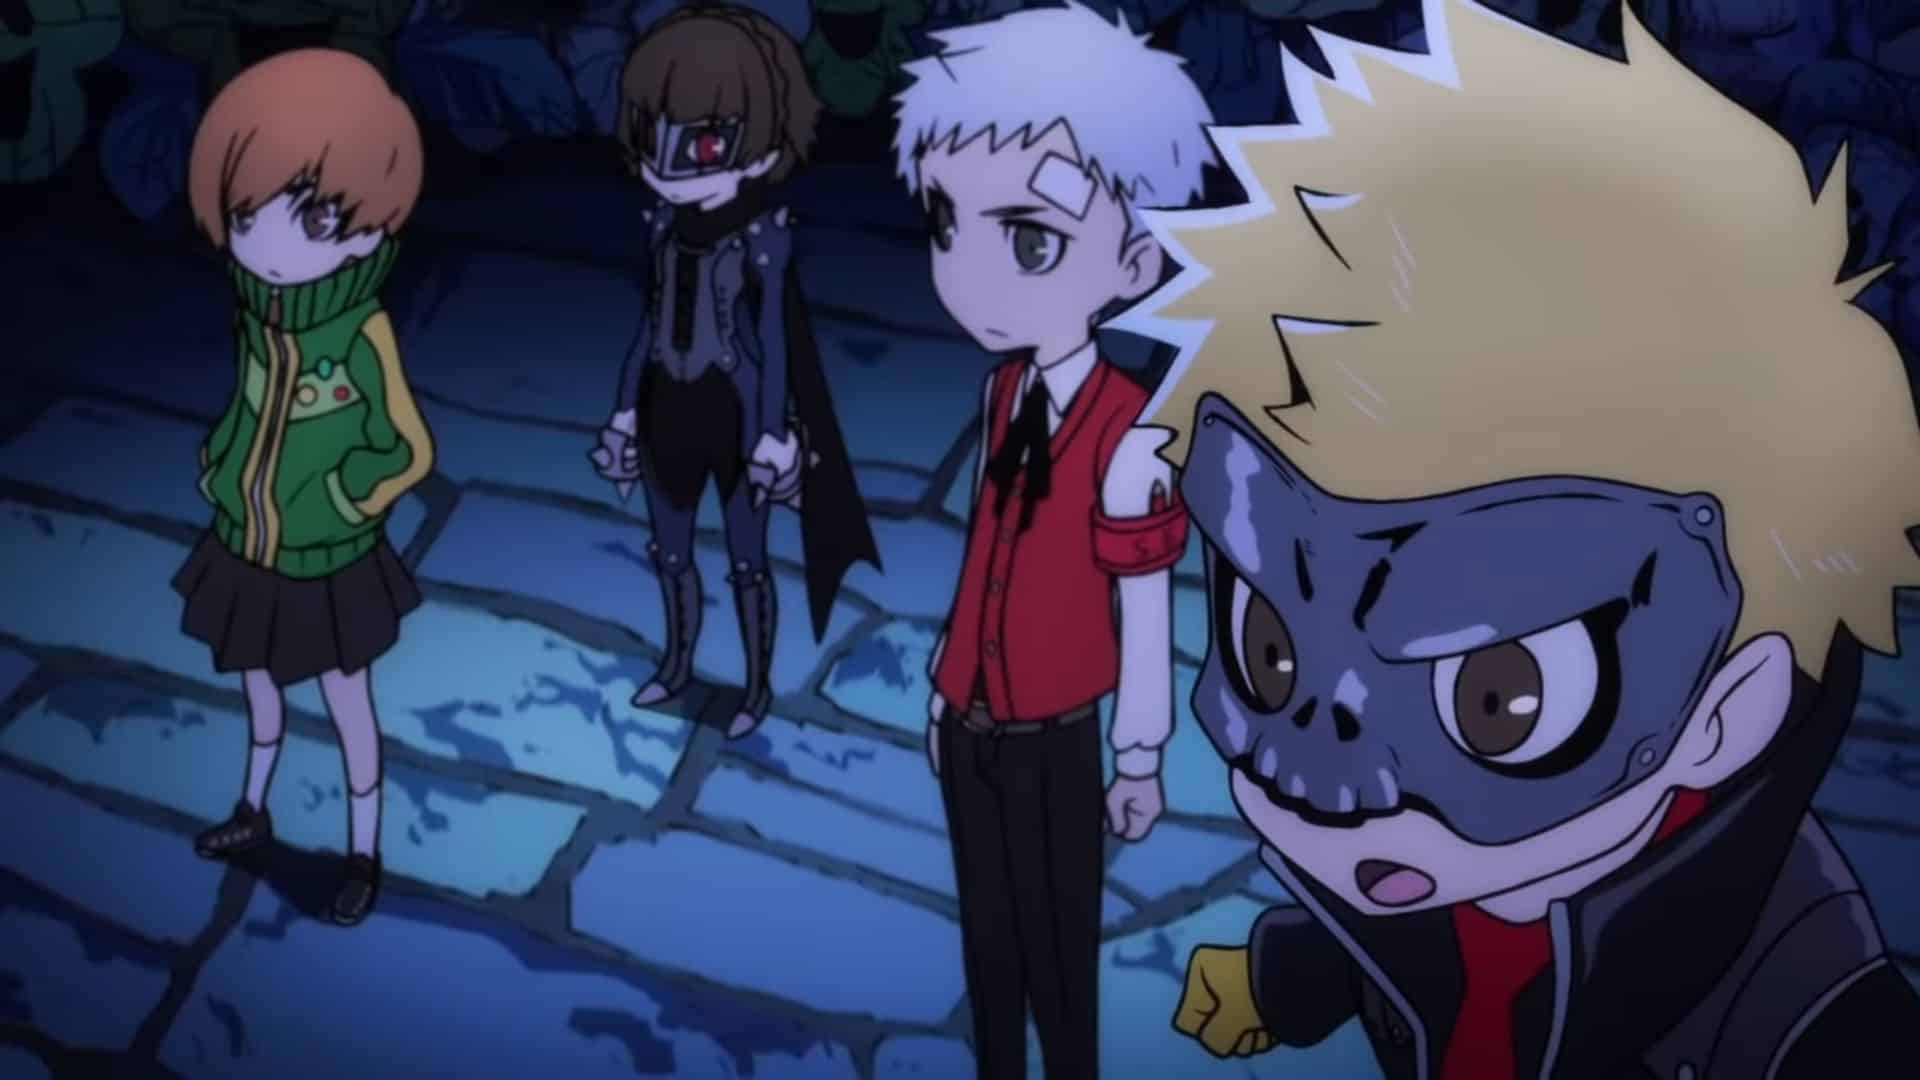 Persona Q2: New Cinema Labyrinth - Review